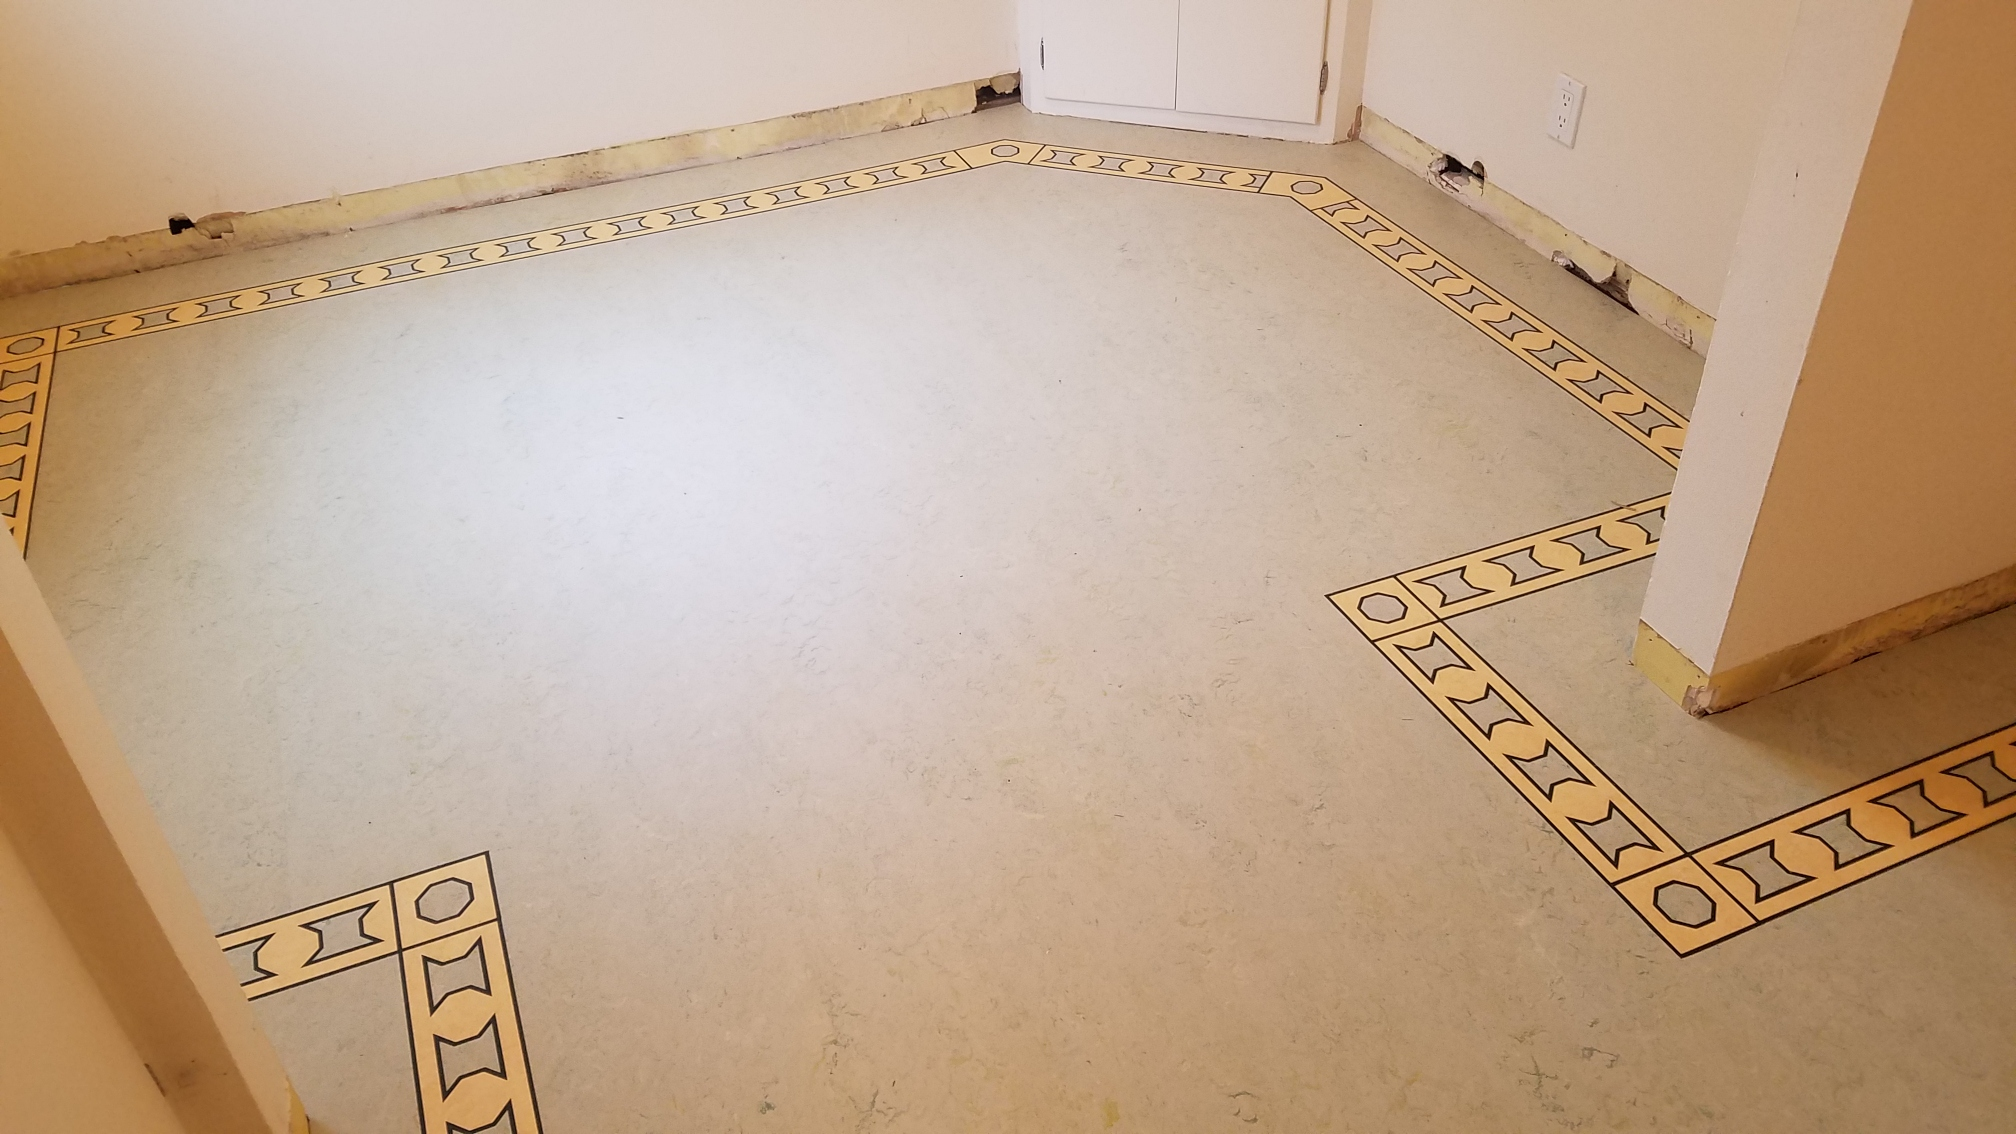 Custom border feature on linoleum floor